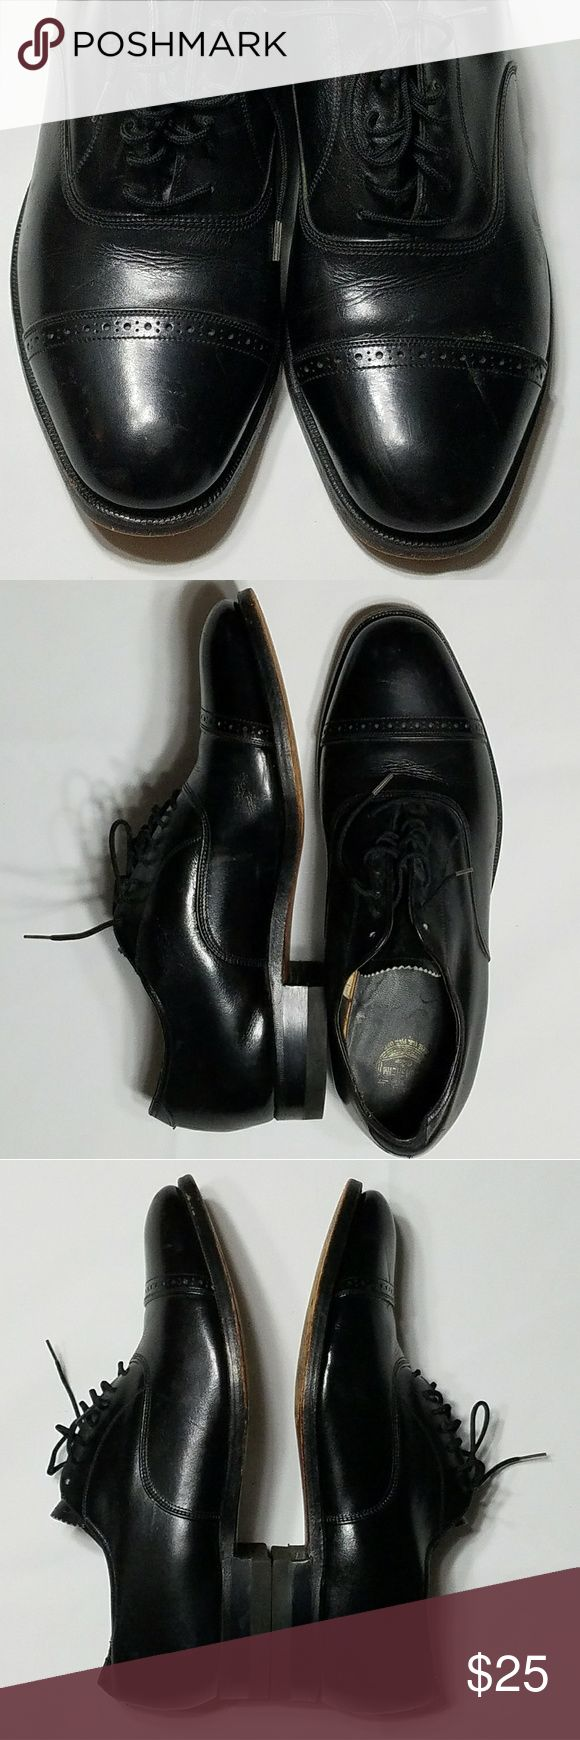 Florsheim men's oxfords dress shoes Classic styling make these all leather lace-up oxfords perfect for many occassions from the office to a wedding. Very good pre-owned condition. Florsheim Shoes Oxfords & Derbys